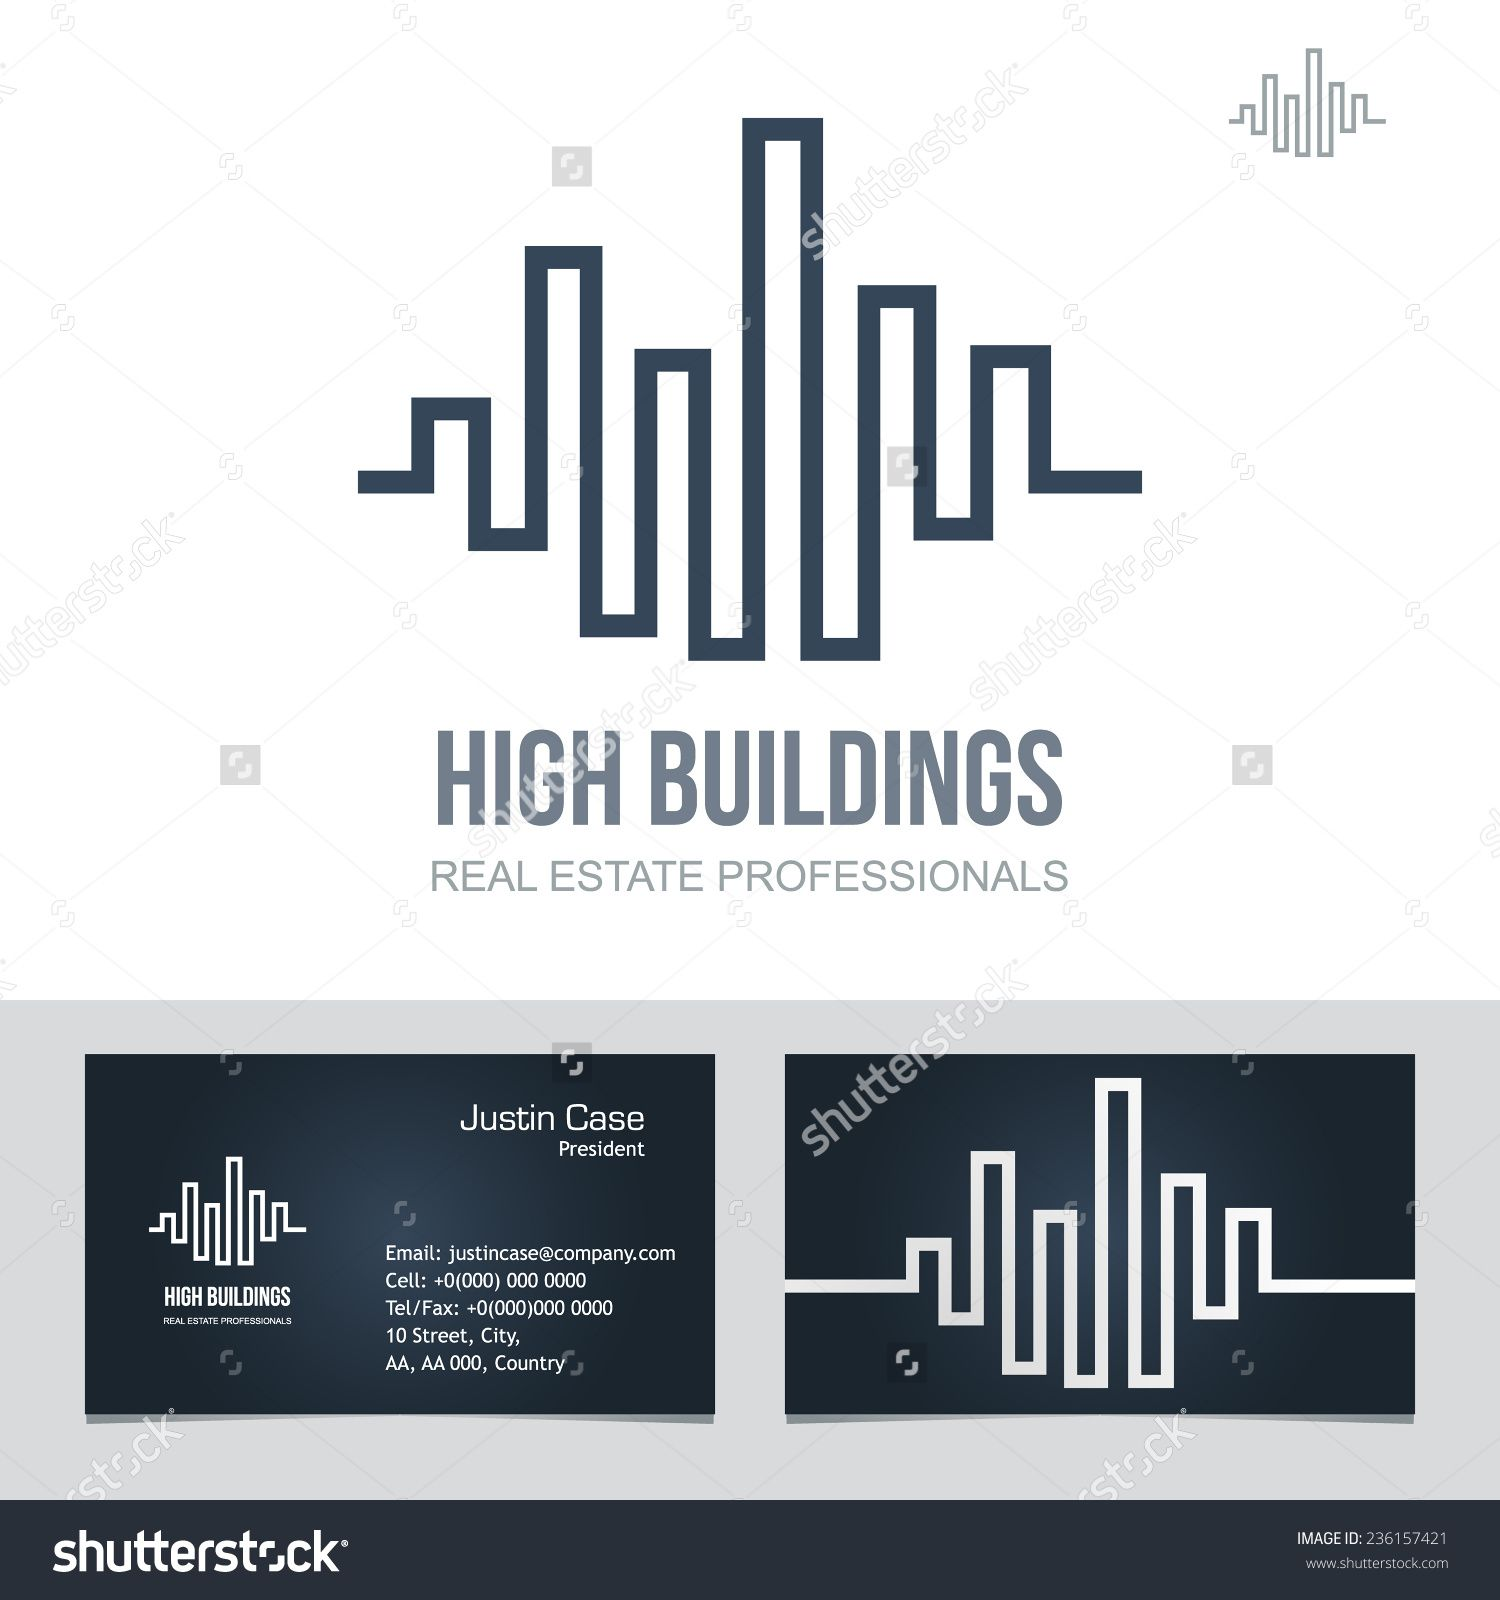 Real estate business sign business card vector template for real estate business sign business card vector template for architecture bureau insurance brokerage reheart Images